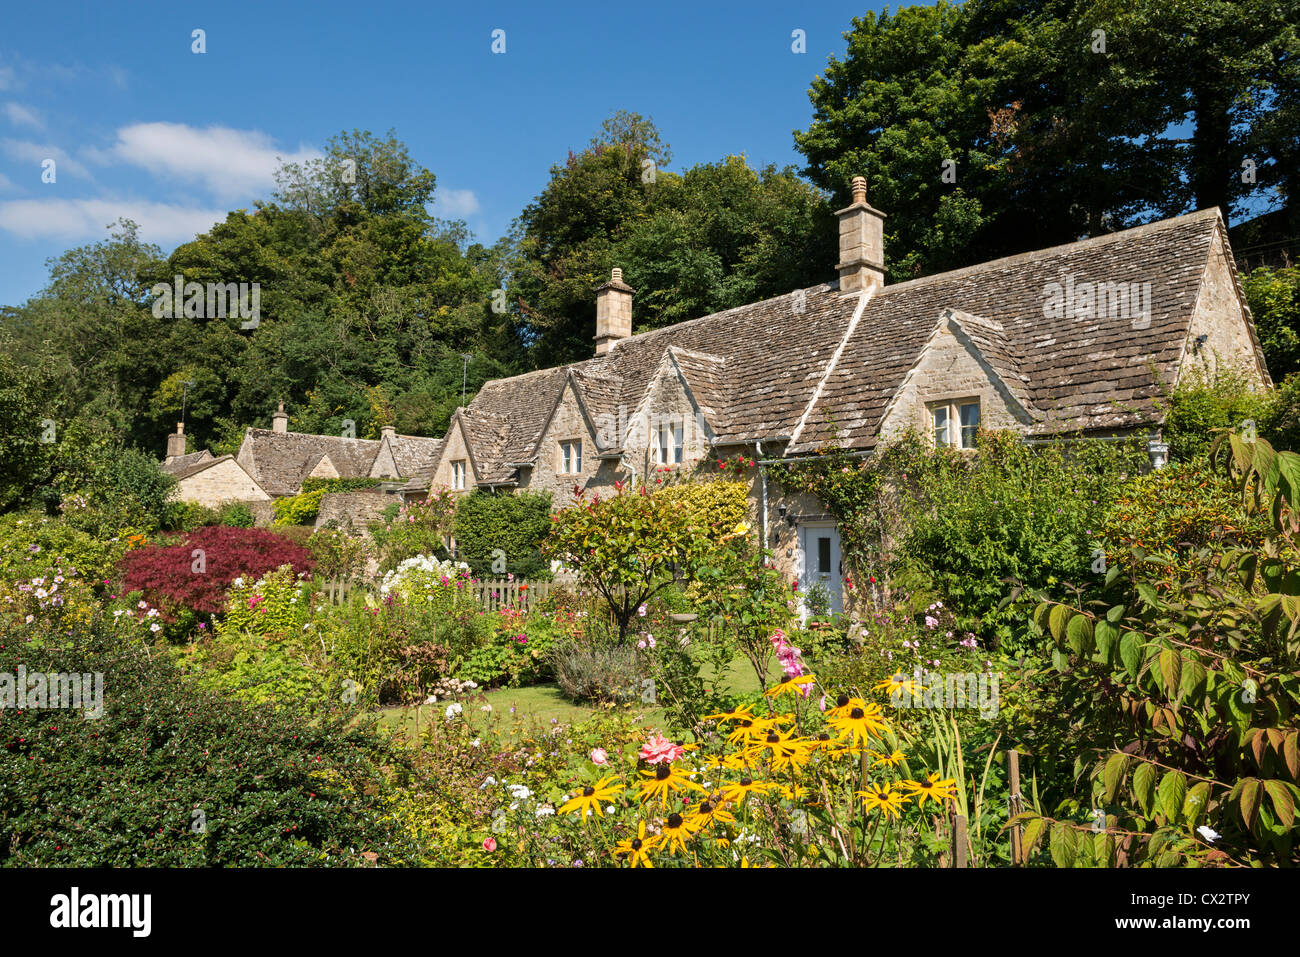 Pretty country cottages and gardens in the picturesque Cotswolds village of Bibury, Gloucestershire, England. - Stock Image